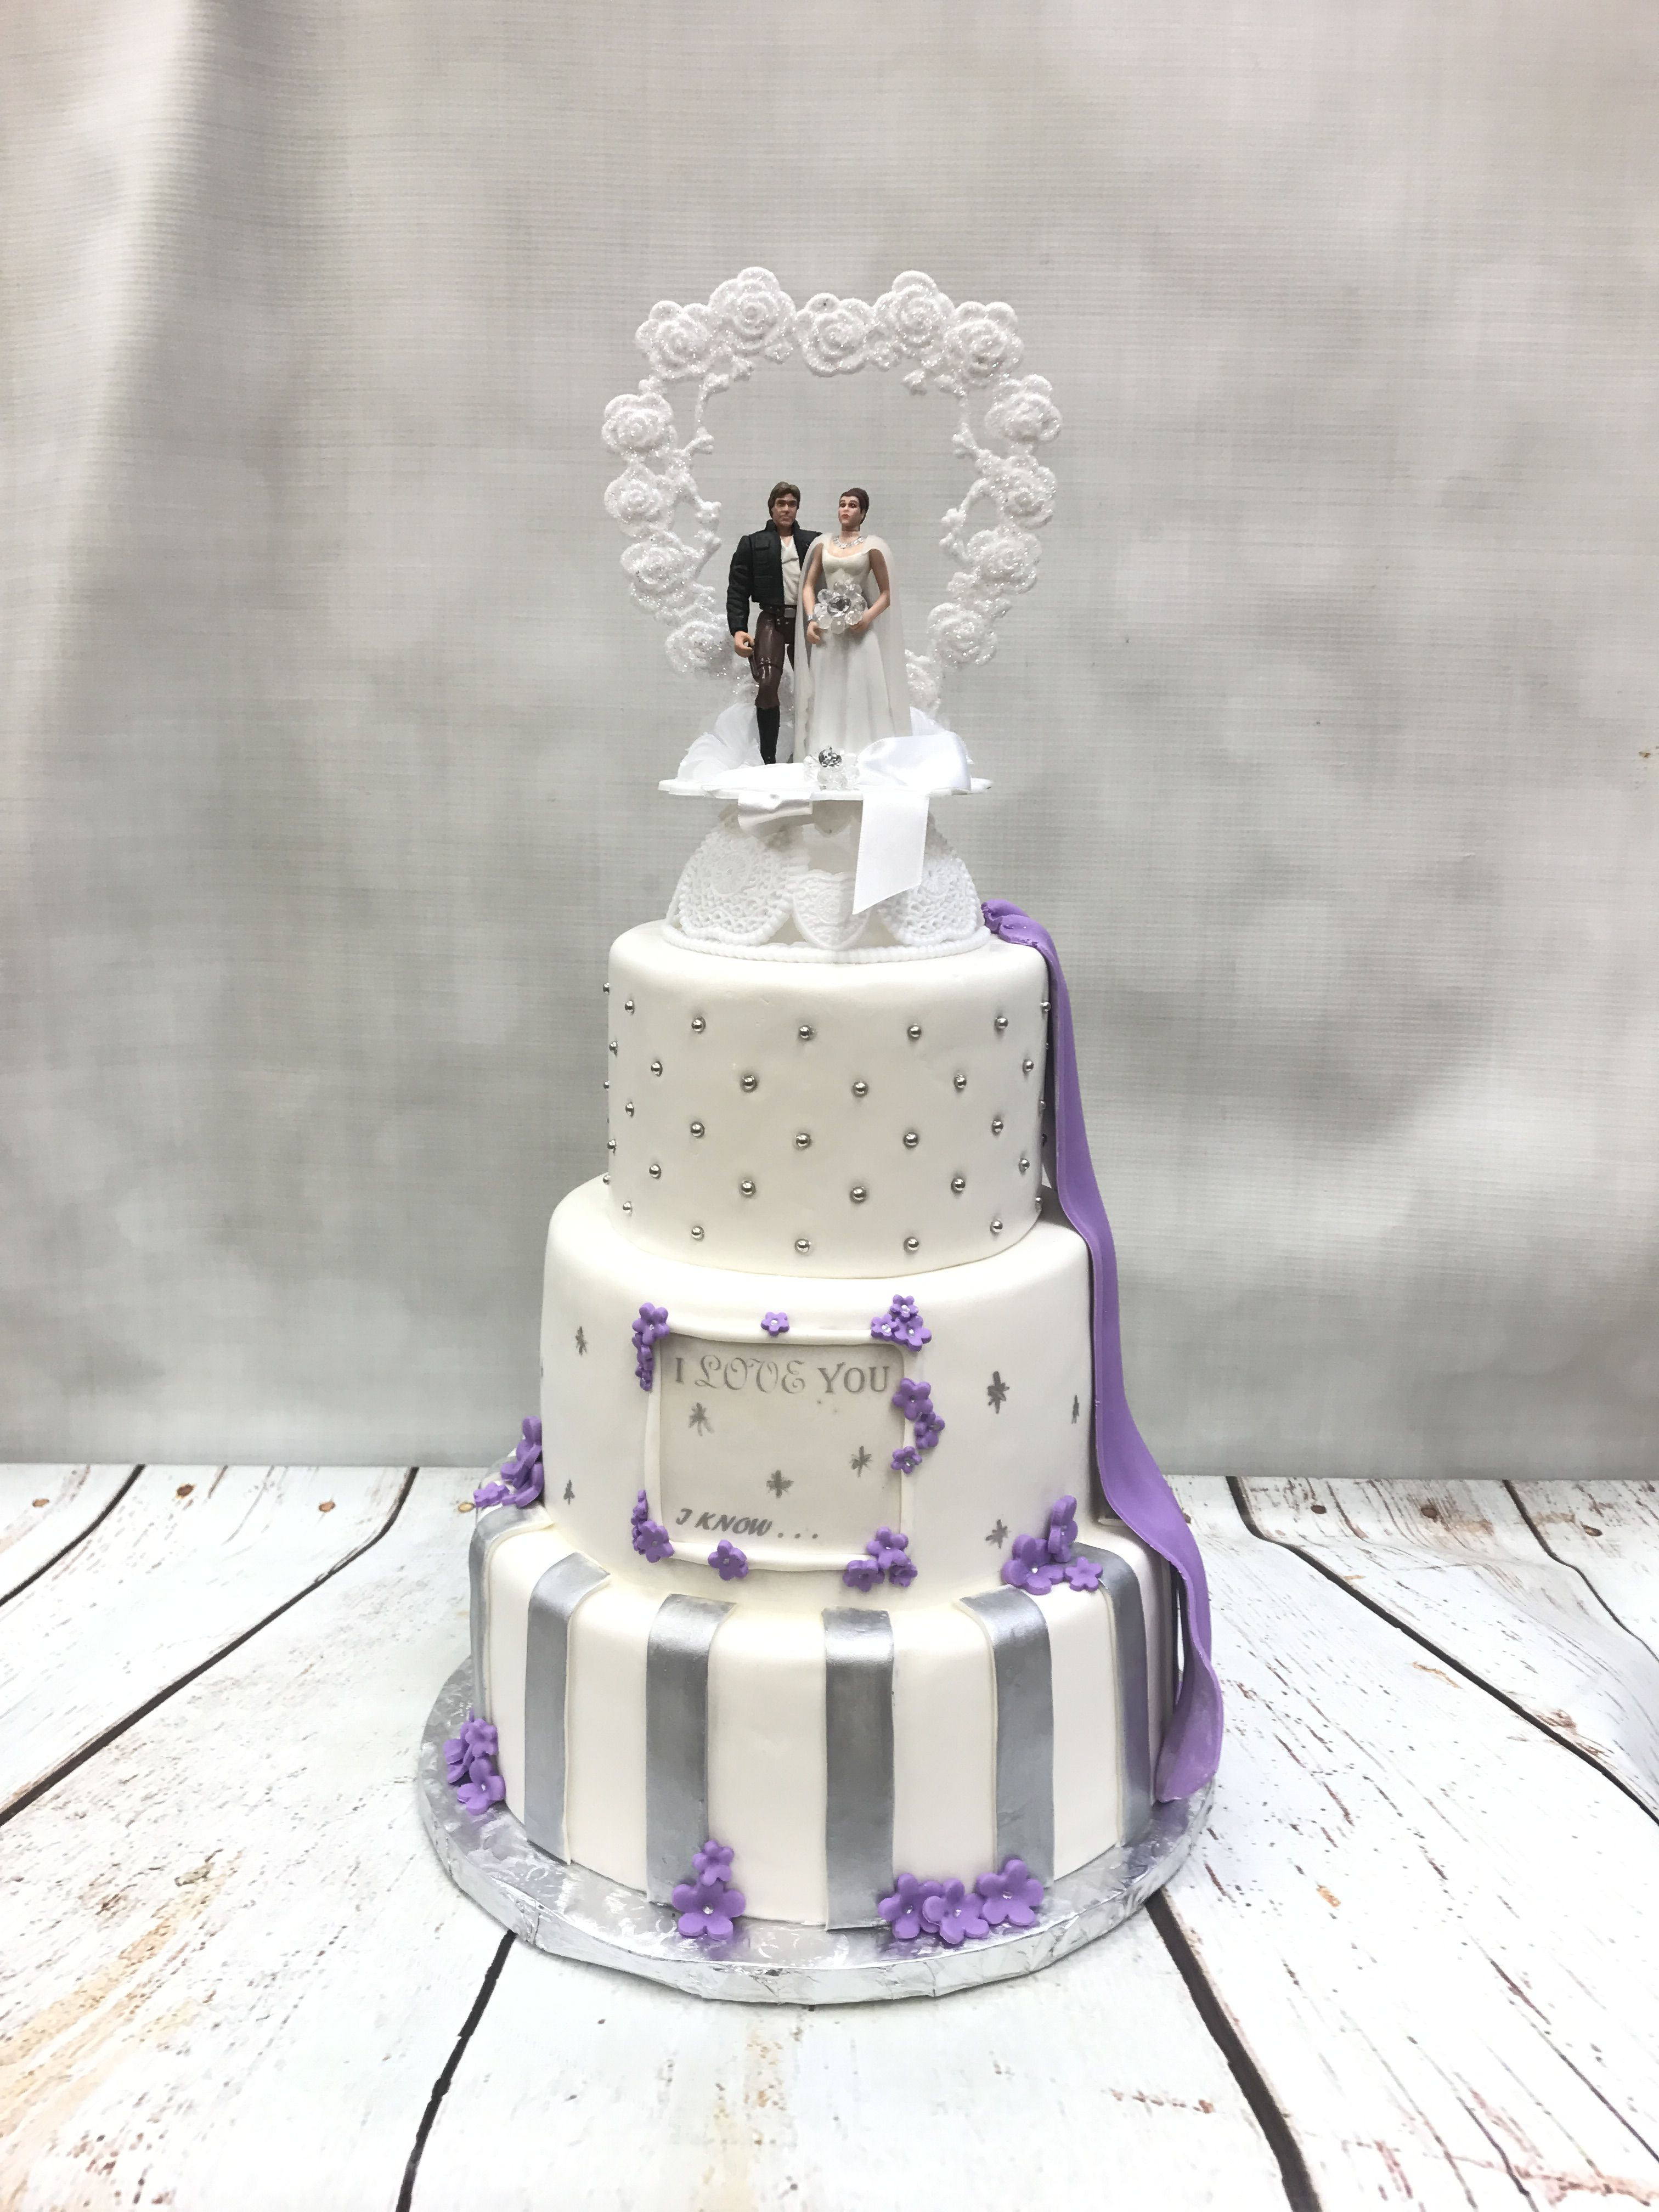 Star wars and lavender themed wedding cake | Wedding cakes ...